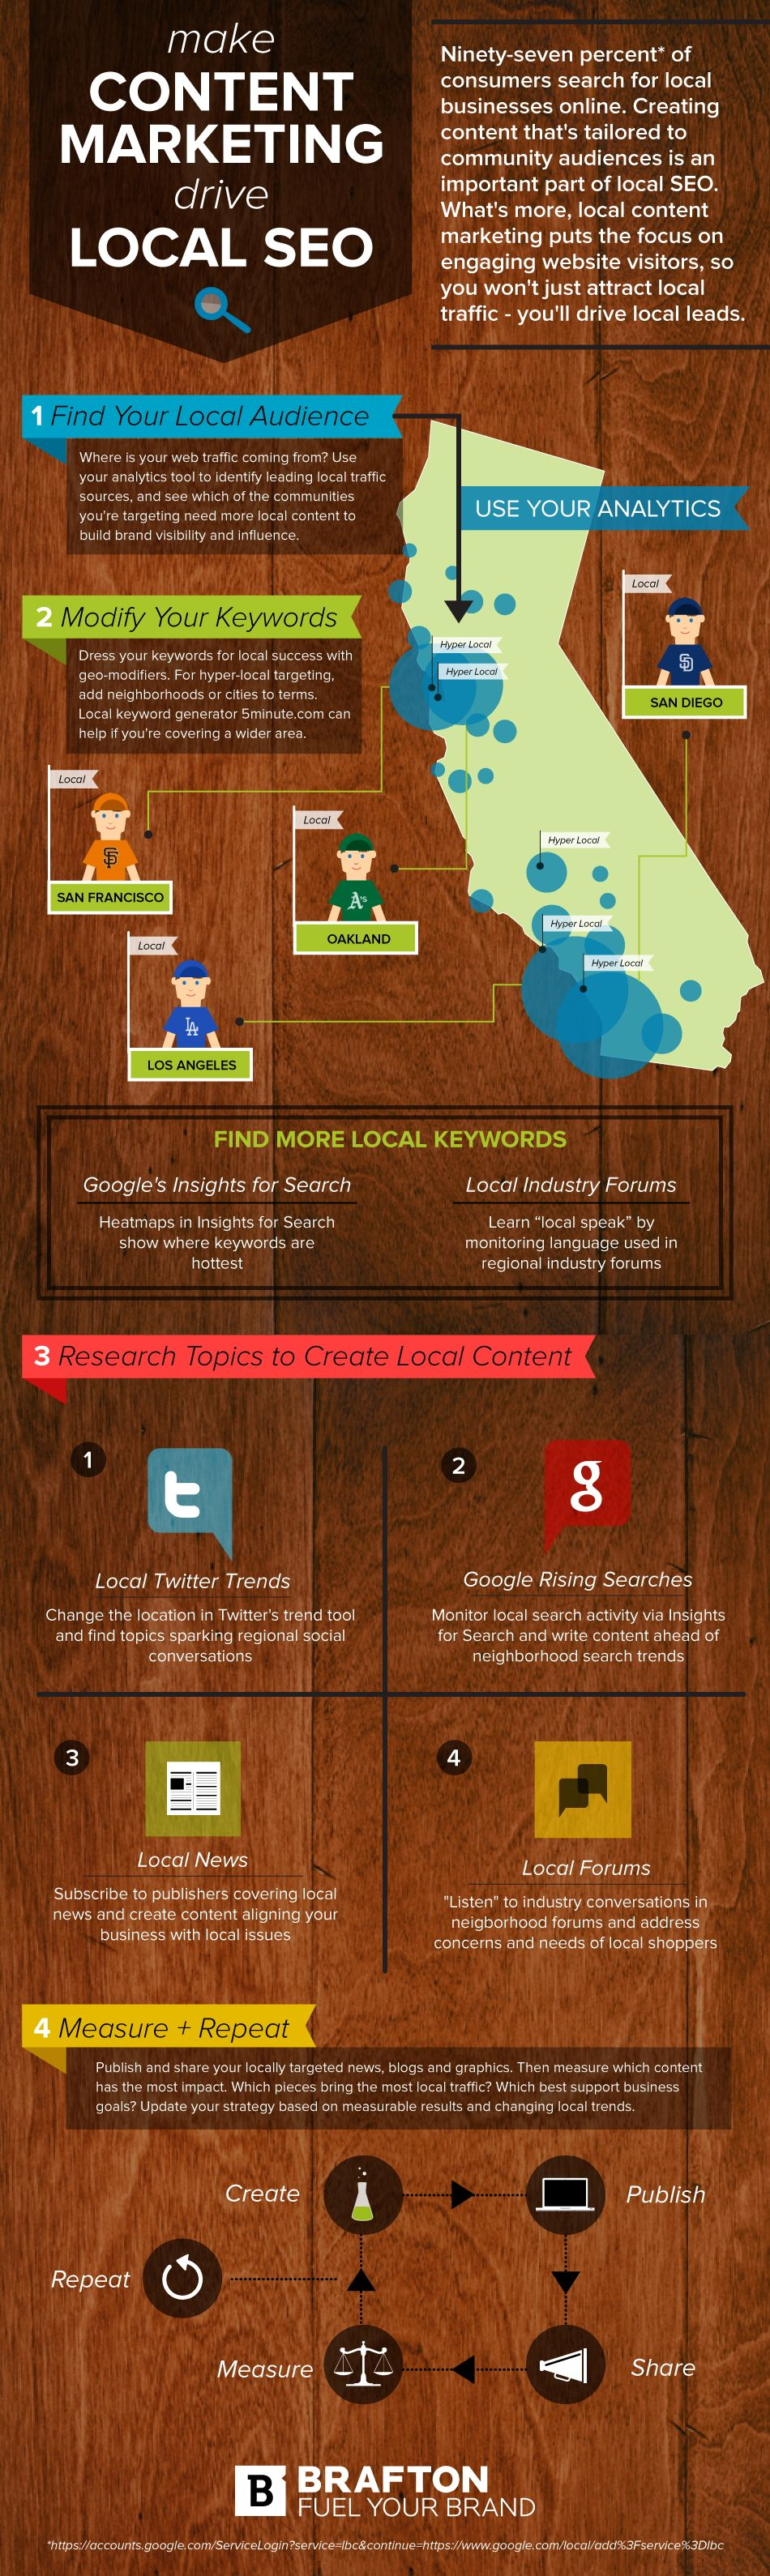 Content marketing driving local SEO. More SEO tips at http://getonthemap.us